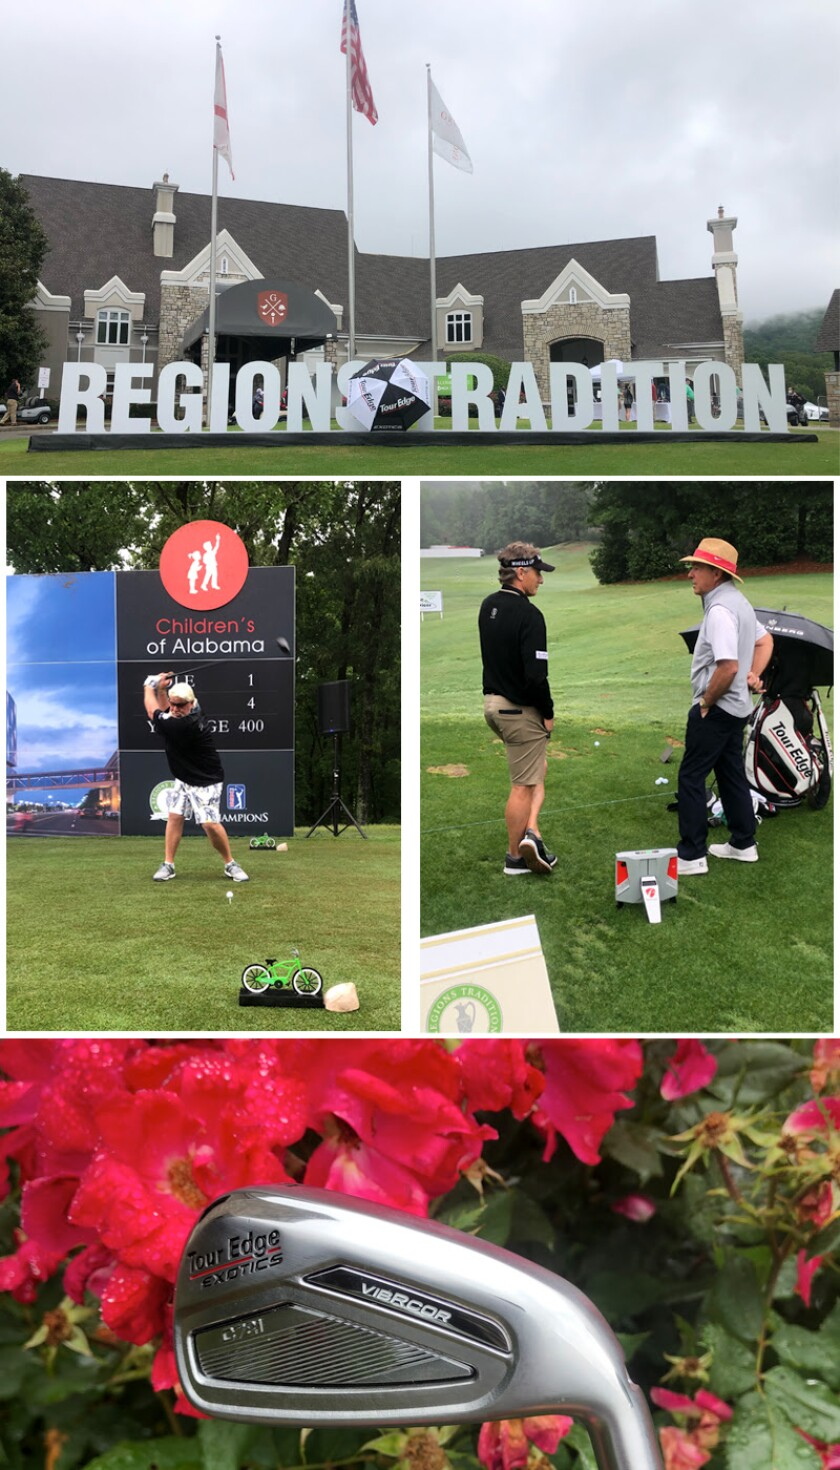 Regions Tradition Photo Collage